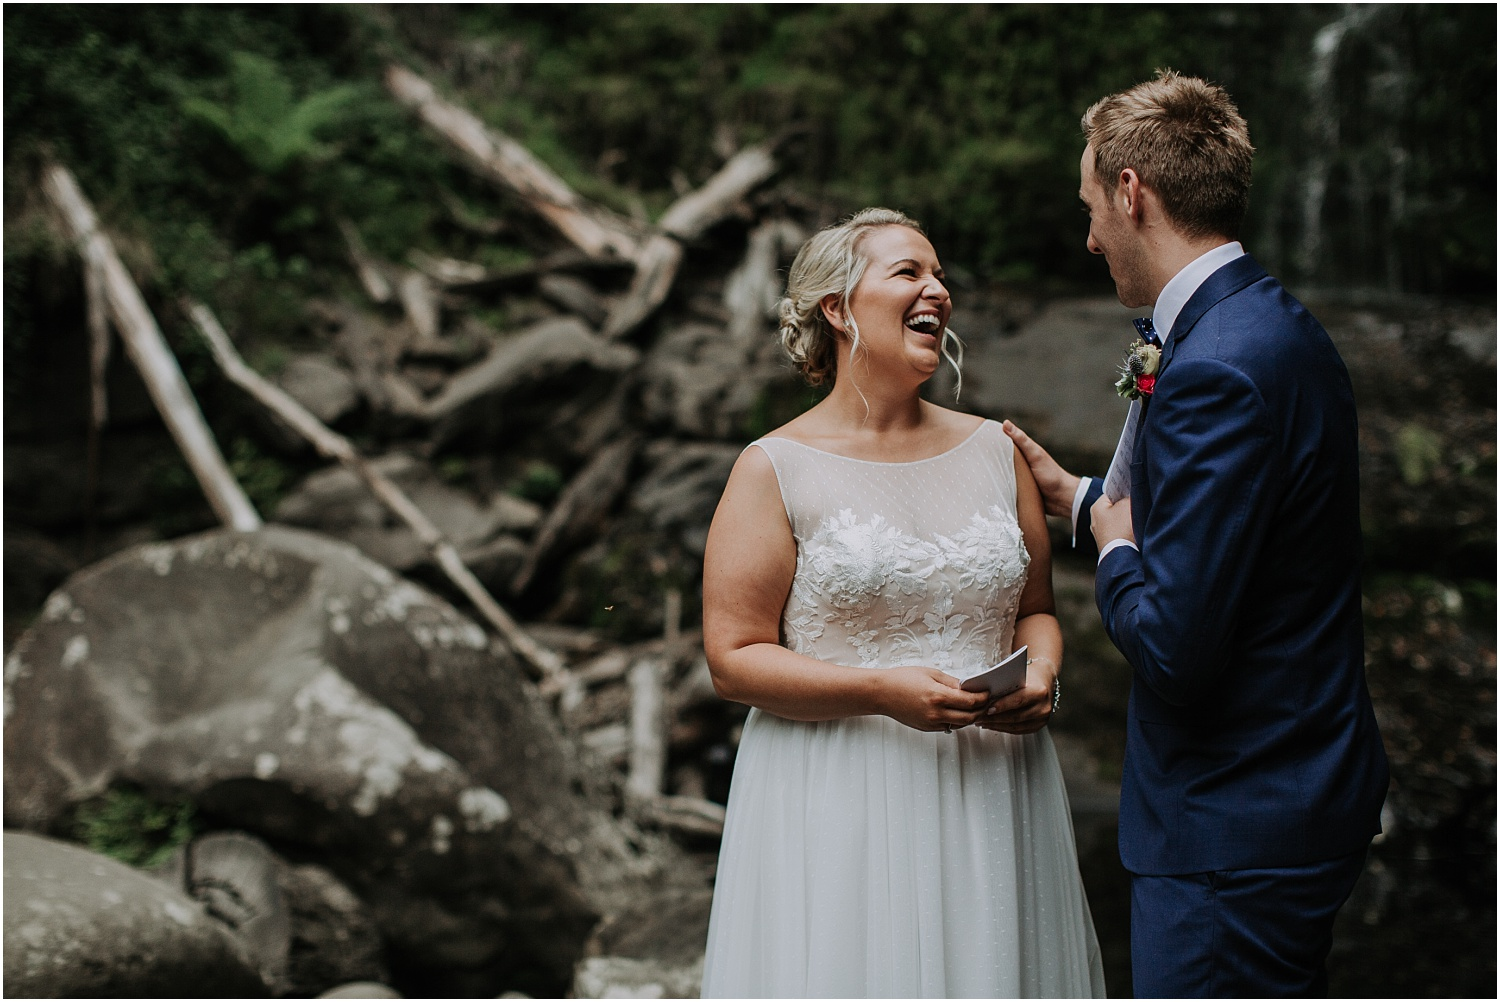 Ainslee and Warwick's elopement at Erskin Falls and the Lorne Beach Pavilion on the Great Ocean Road._0058.jpg